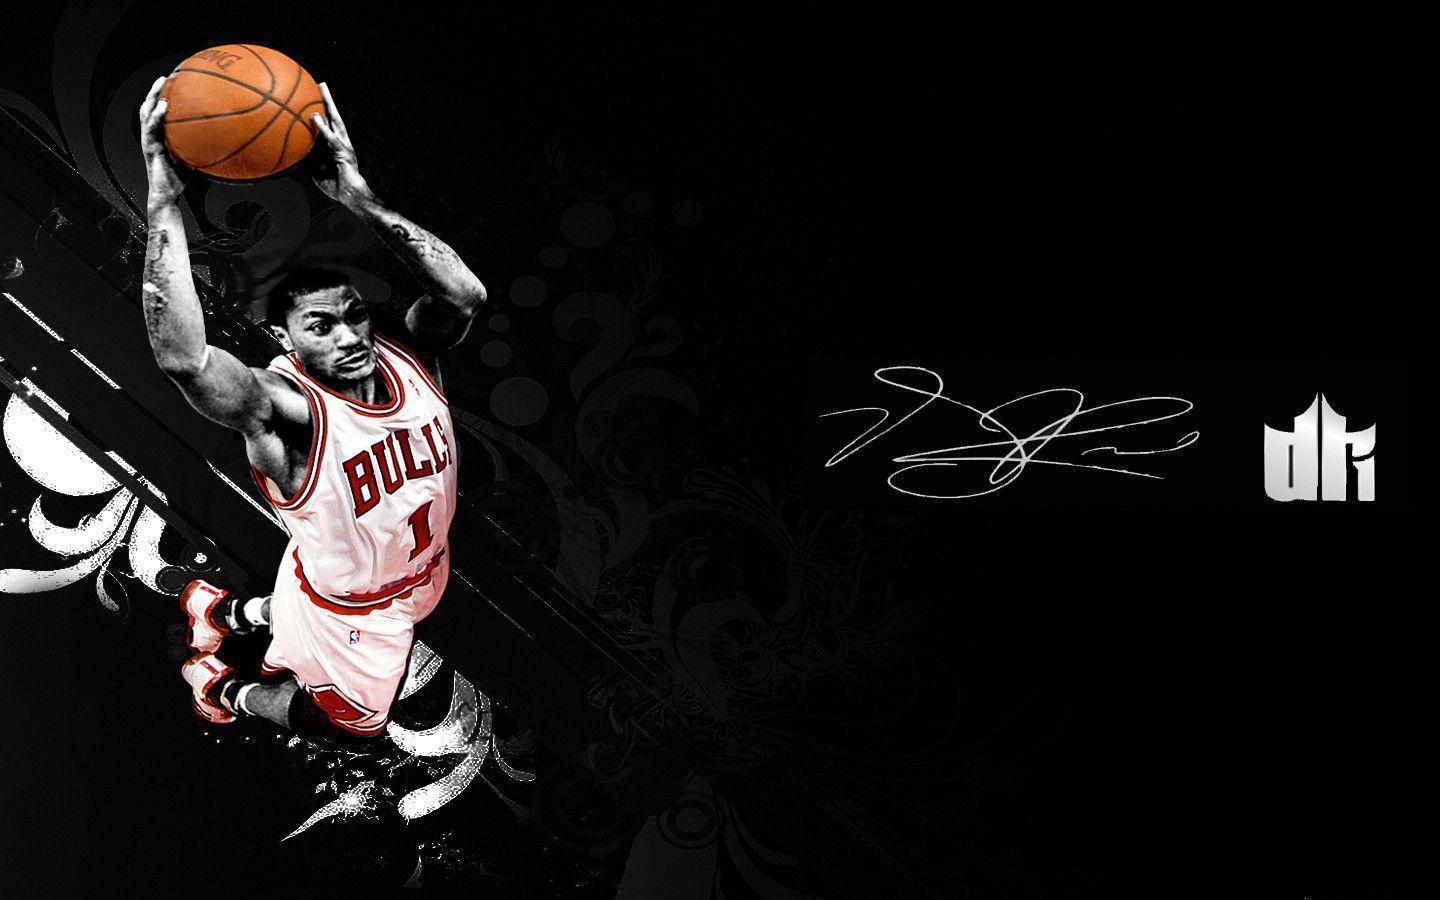 Derrick Rose Logo Wallpapers 1440x900